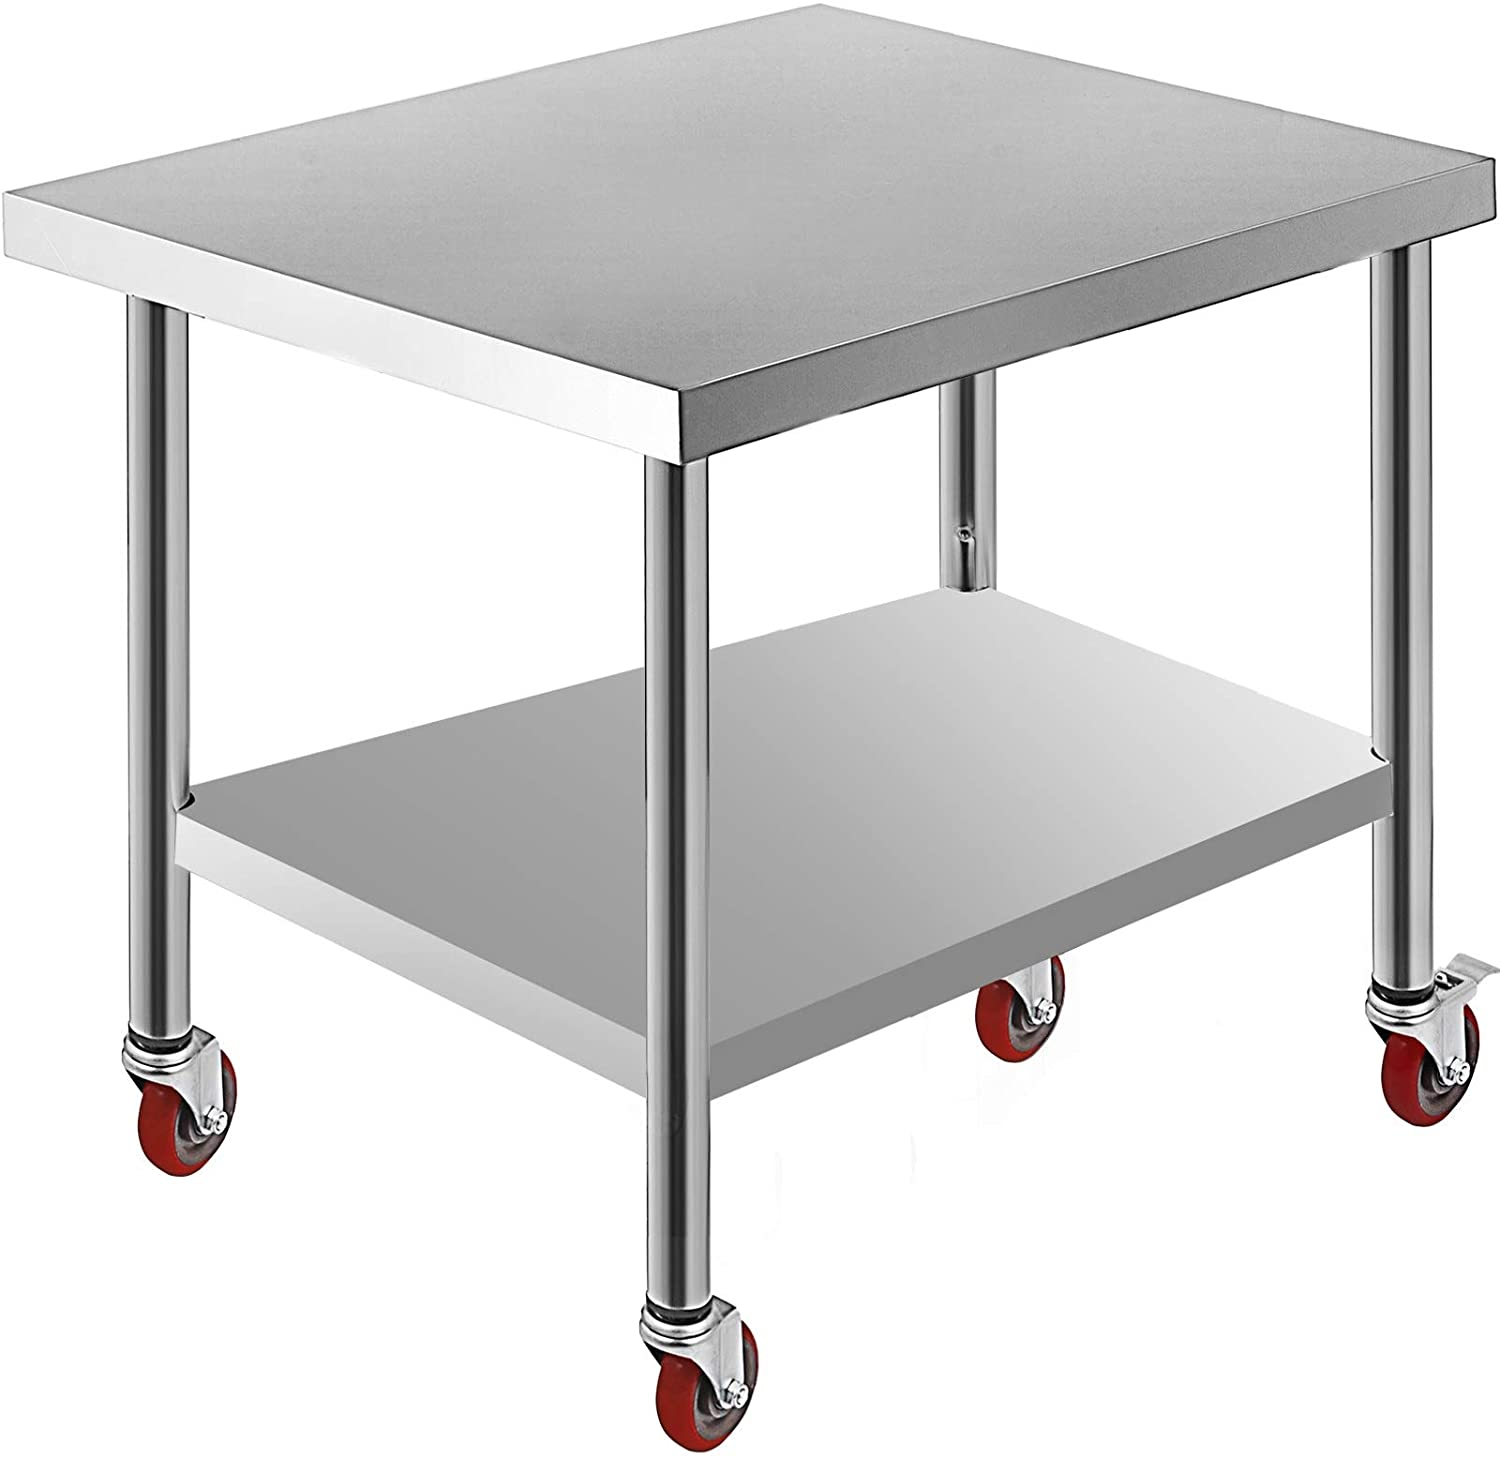 Mophorn 30x36 Inch Stainless Steel Work Table 3 Stage Adjustable Shelf with 4 Red Wheels Heavy Duty Commercial Food Prep Worktable with Brake